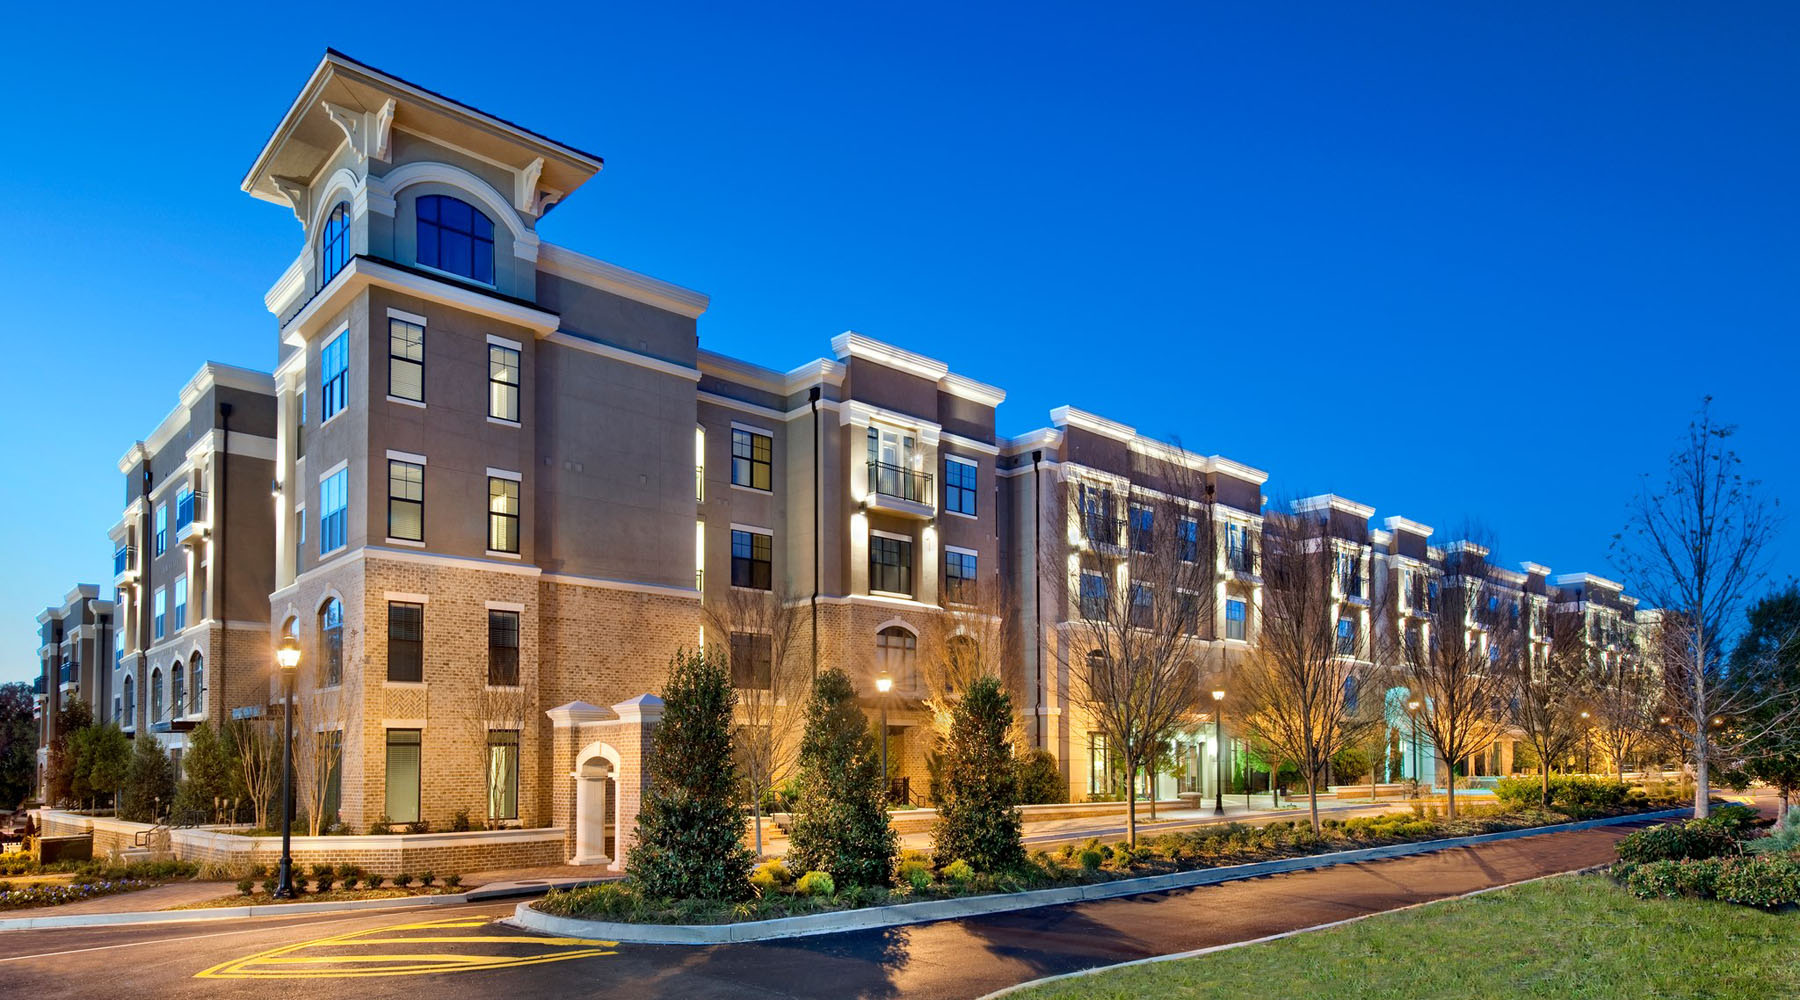 Apartments in brookhaven ga brookleigh flats luxury for Apartment flat designer homes